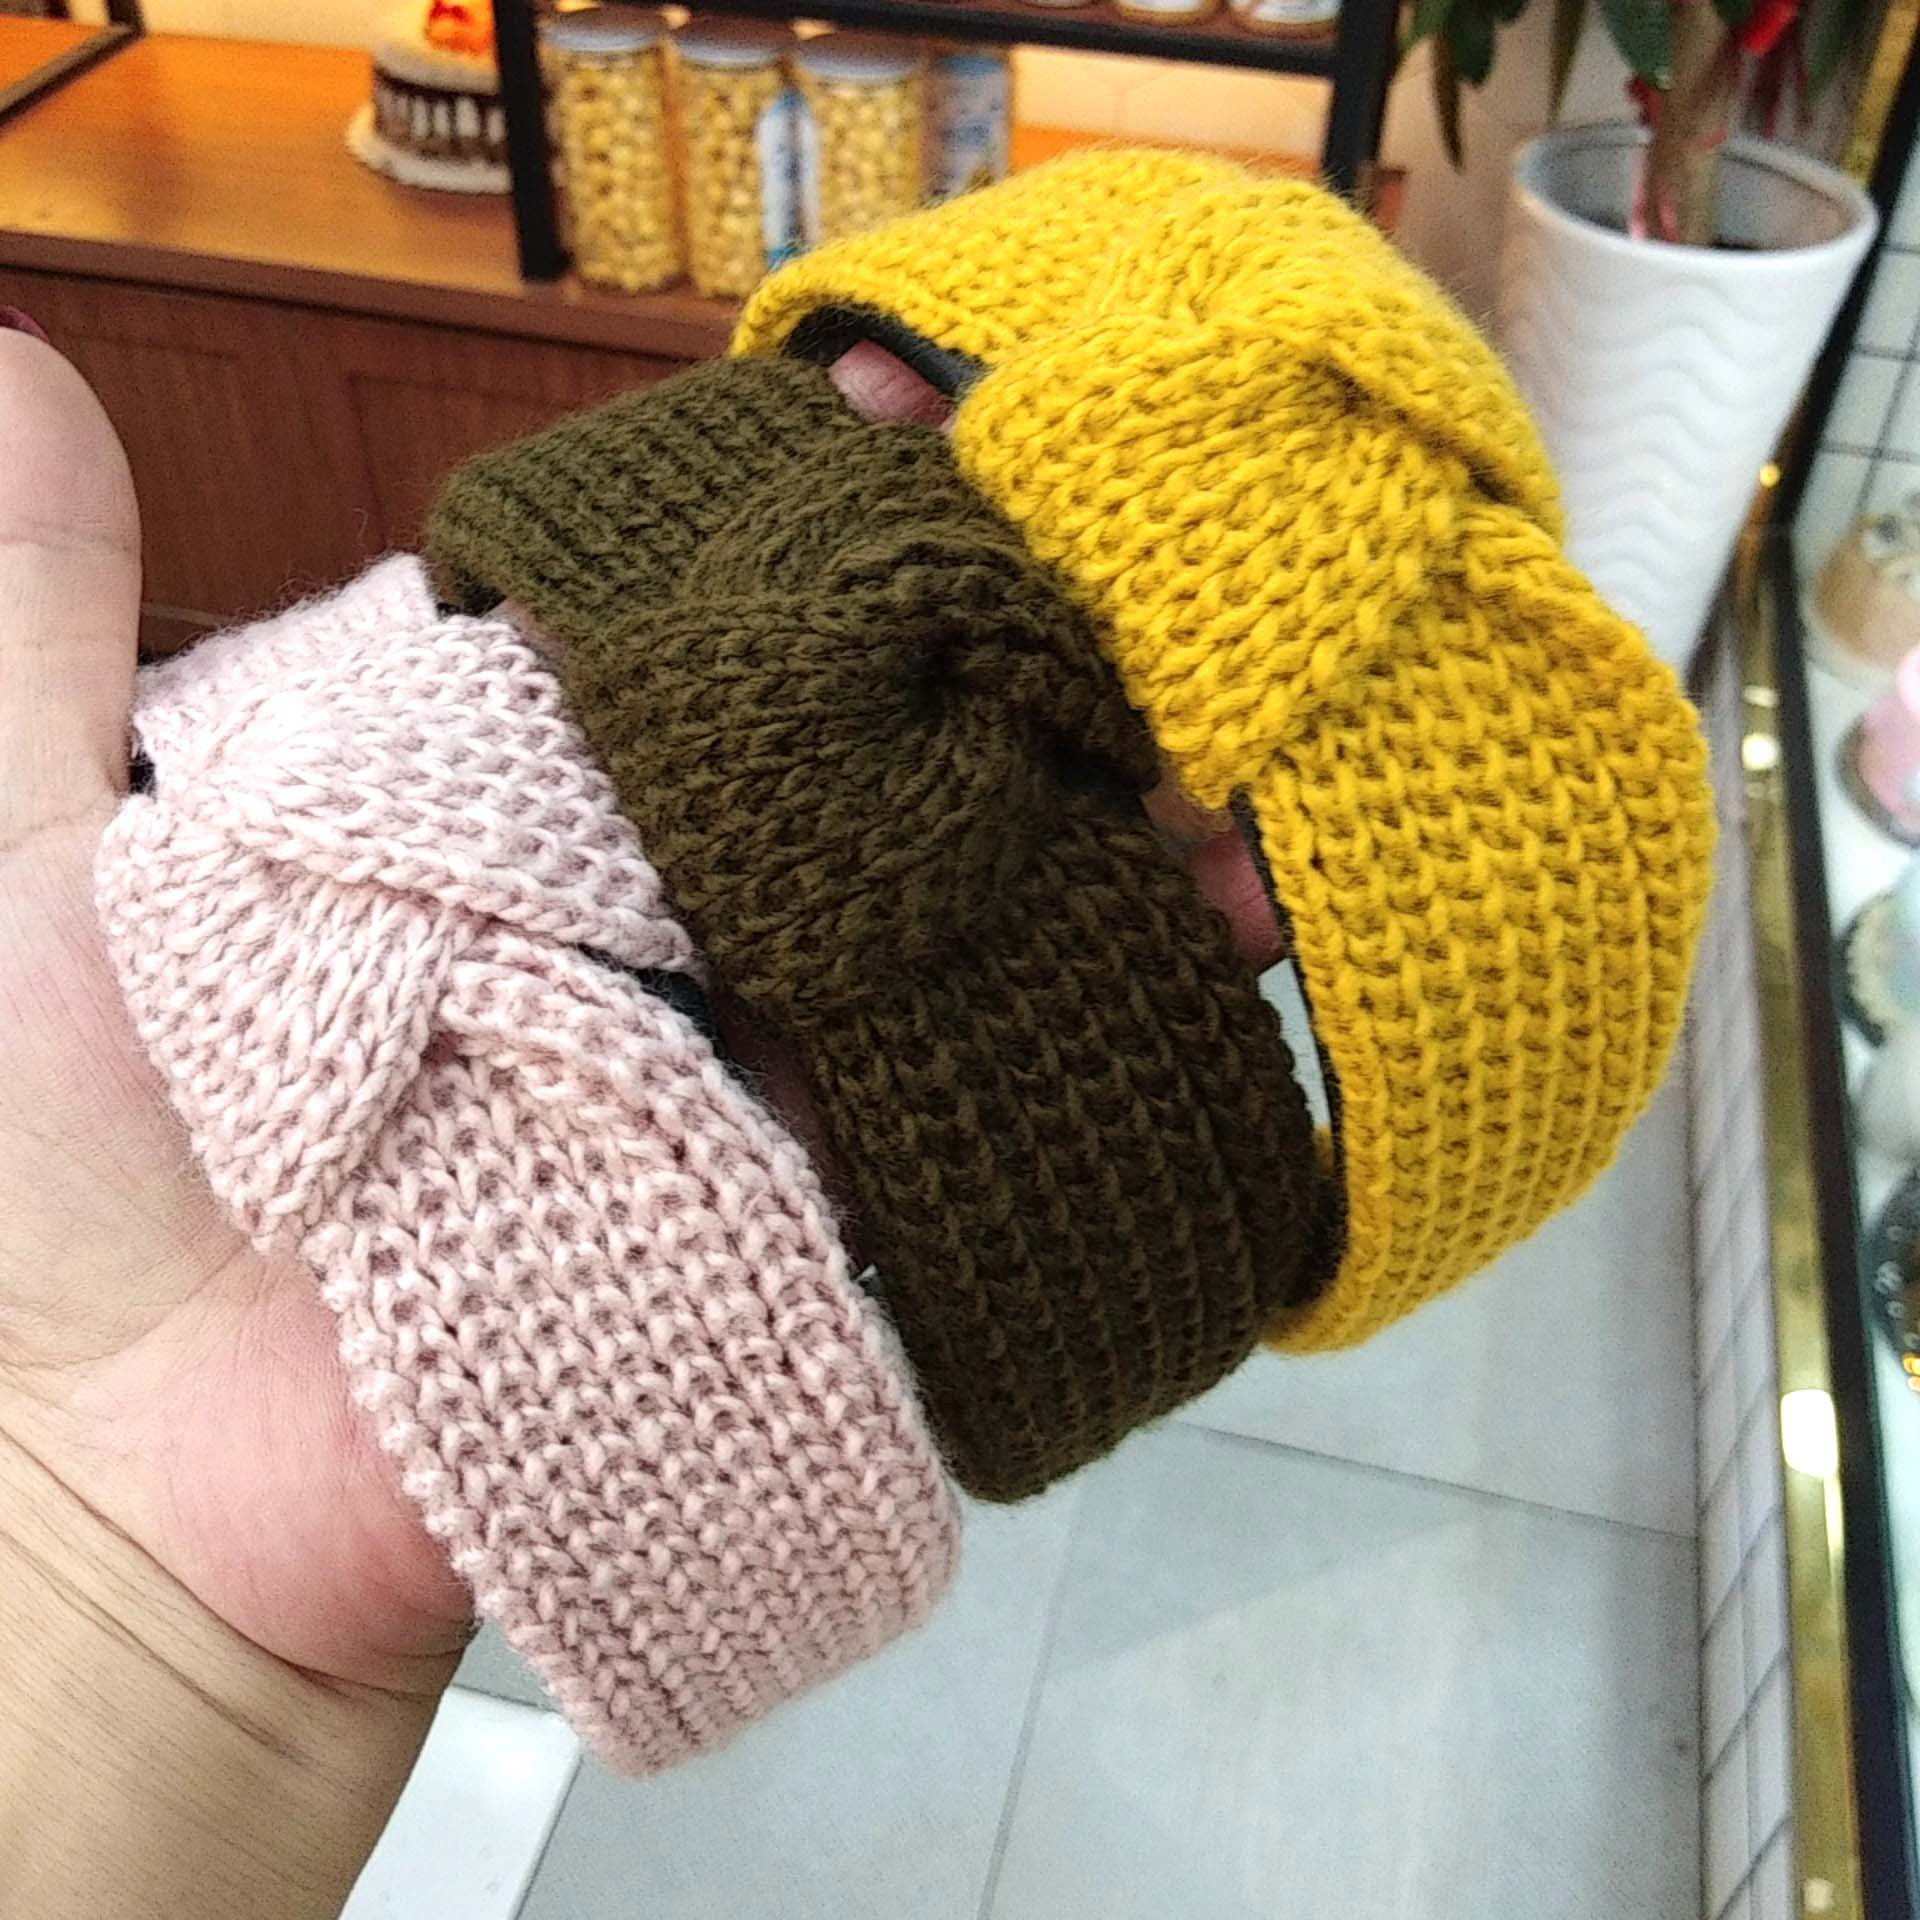 Korean fashion new knitted wool knotted headband wide-brimmed solid color simple hair accessories fashion wild headband ladies wholesale nihaojewelry NHUX222358